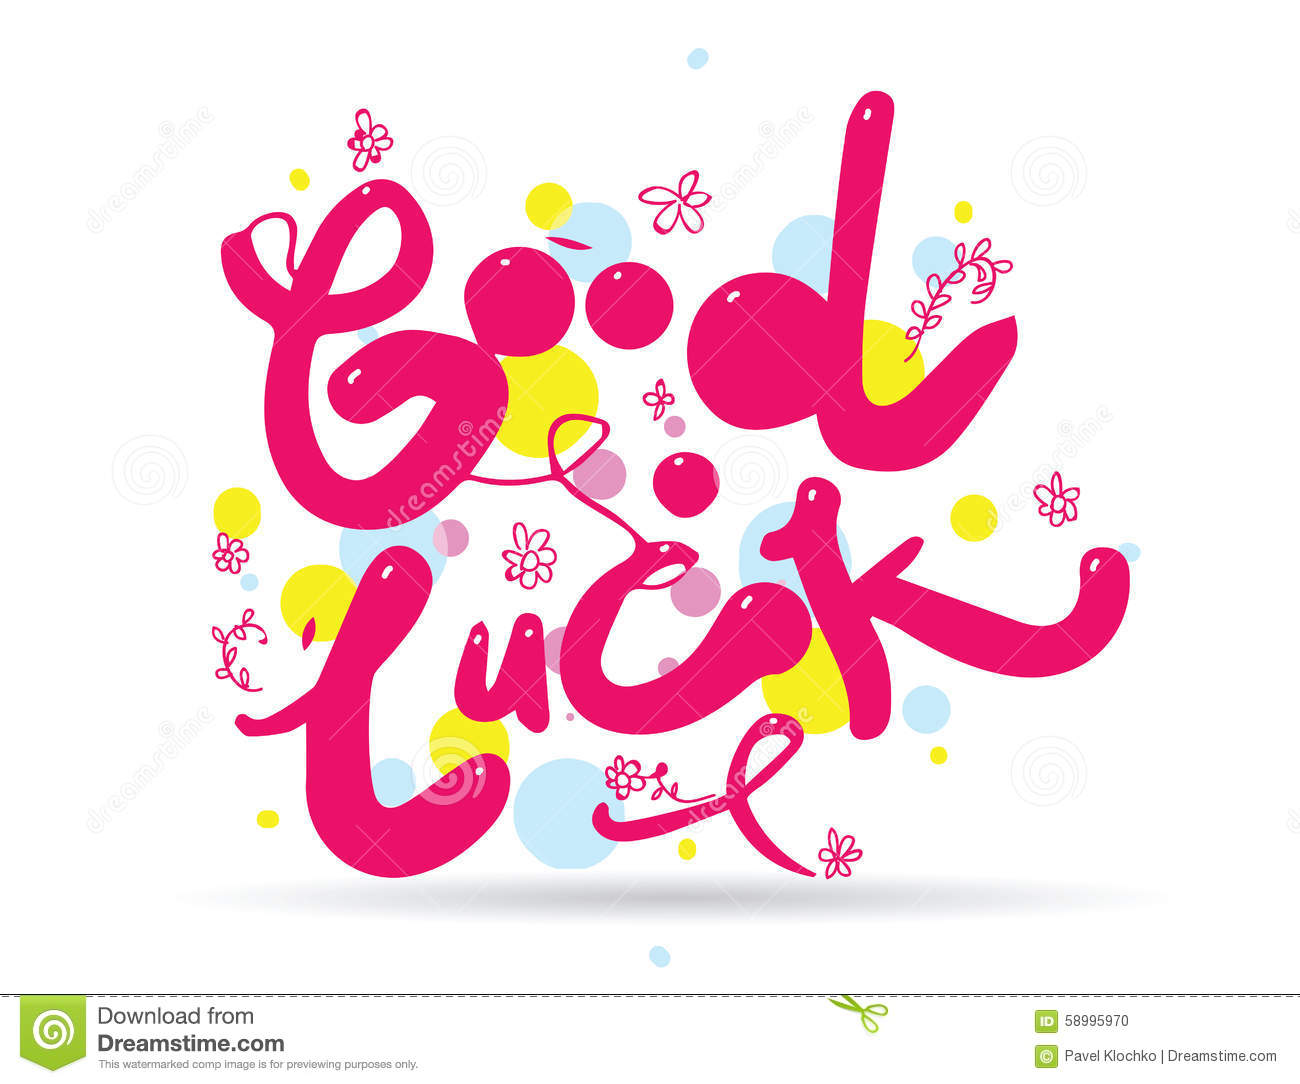 Good Luck Greeting Cards love u cards online valentine cards – Good Luck Cards to Print